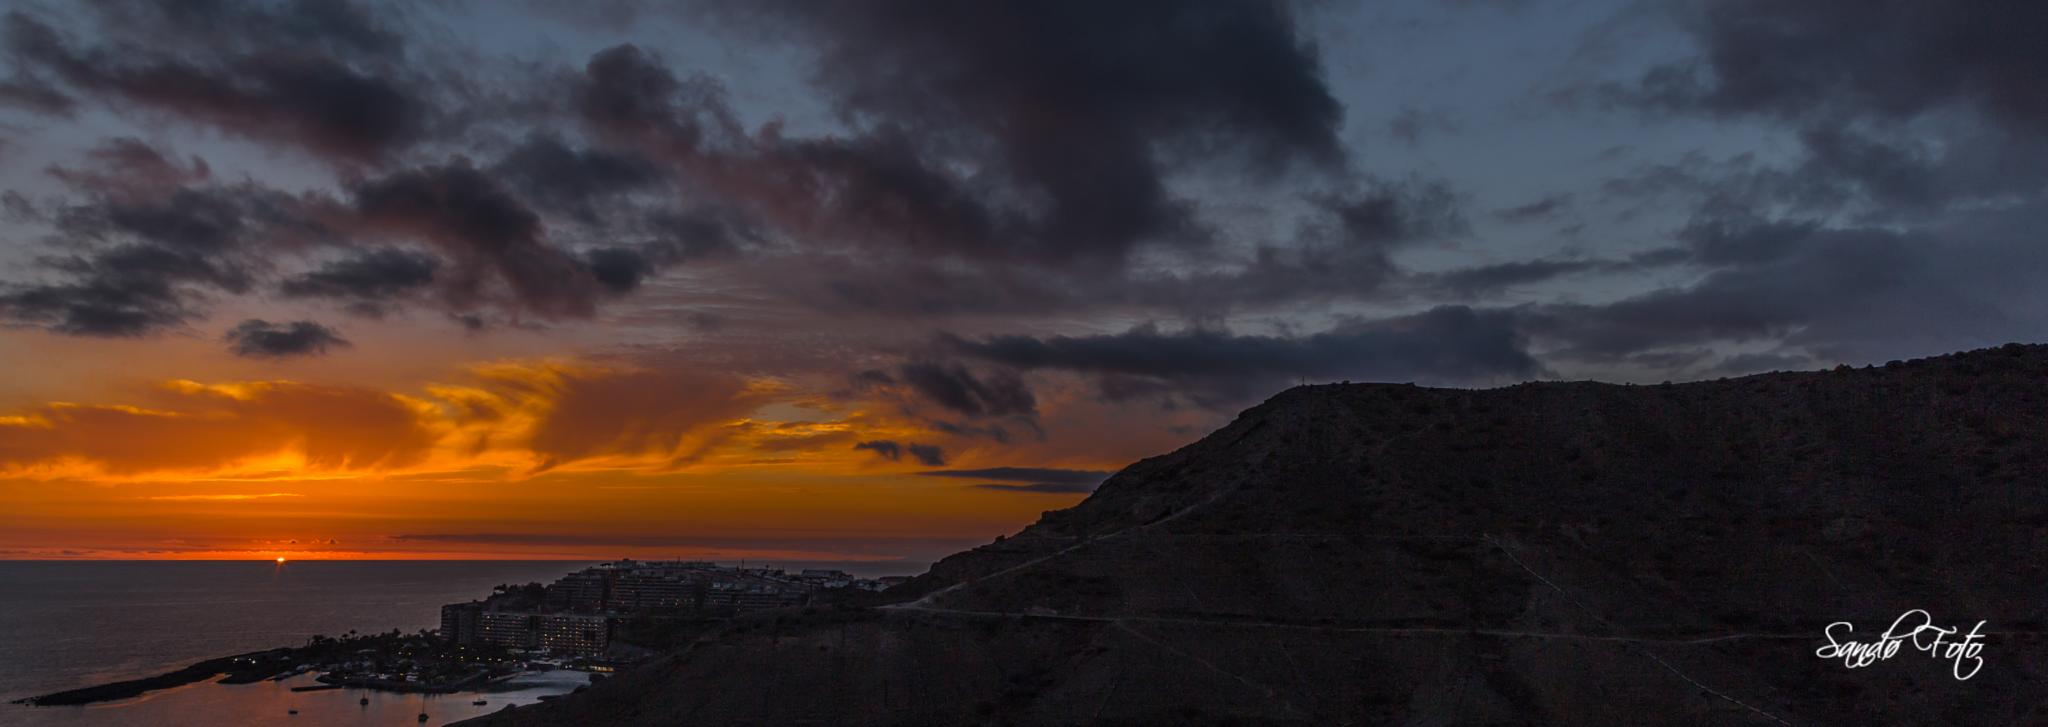 Canary Island Sunset by tjsandofoto